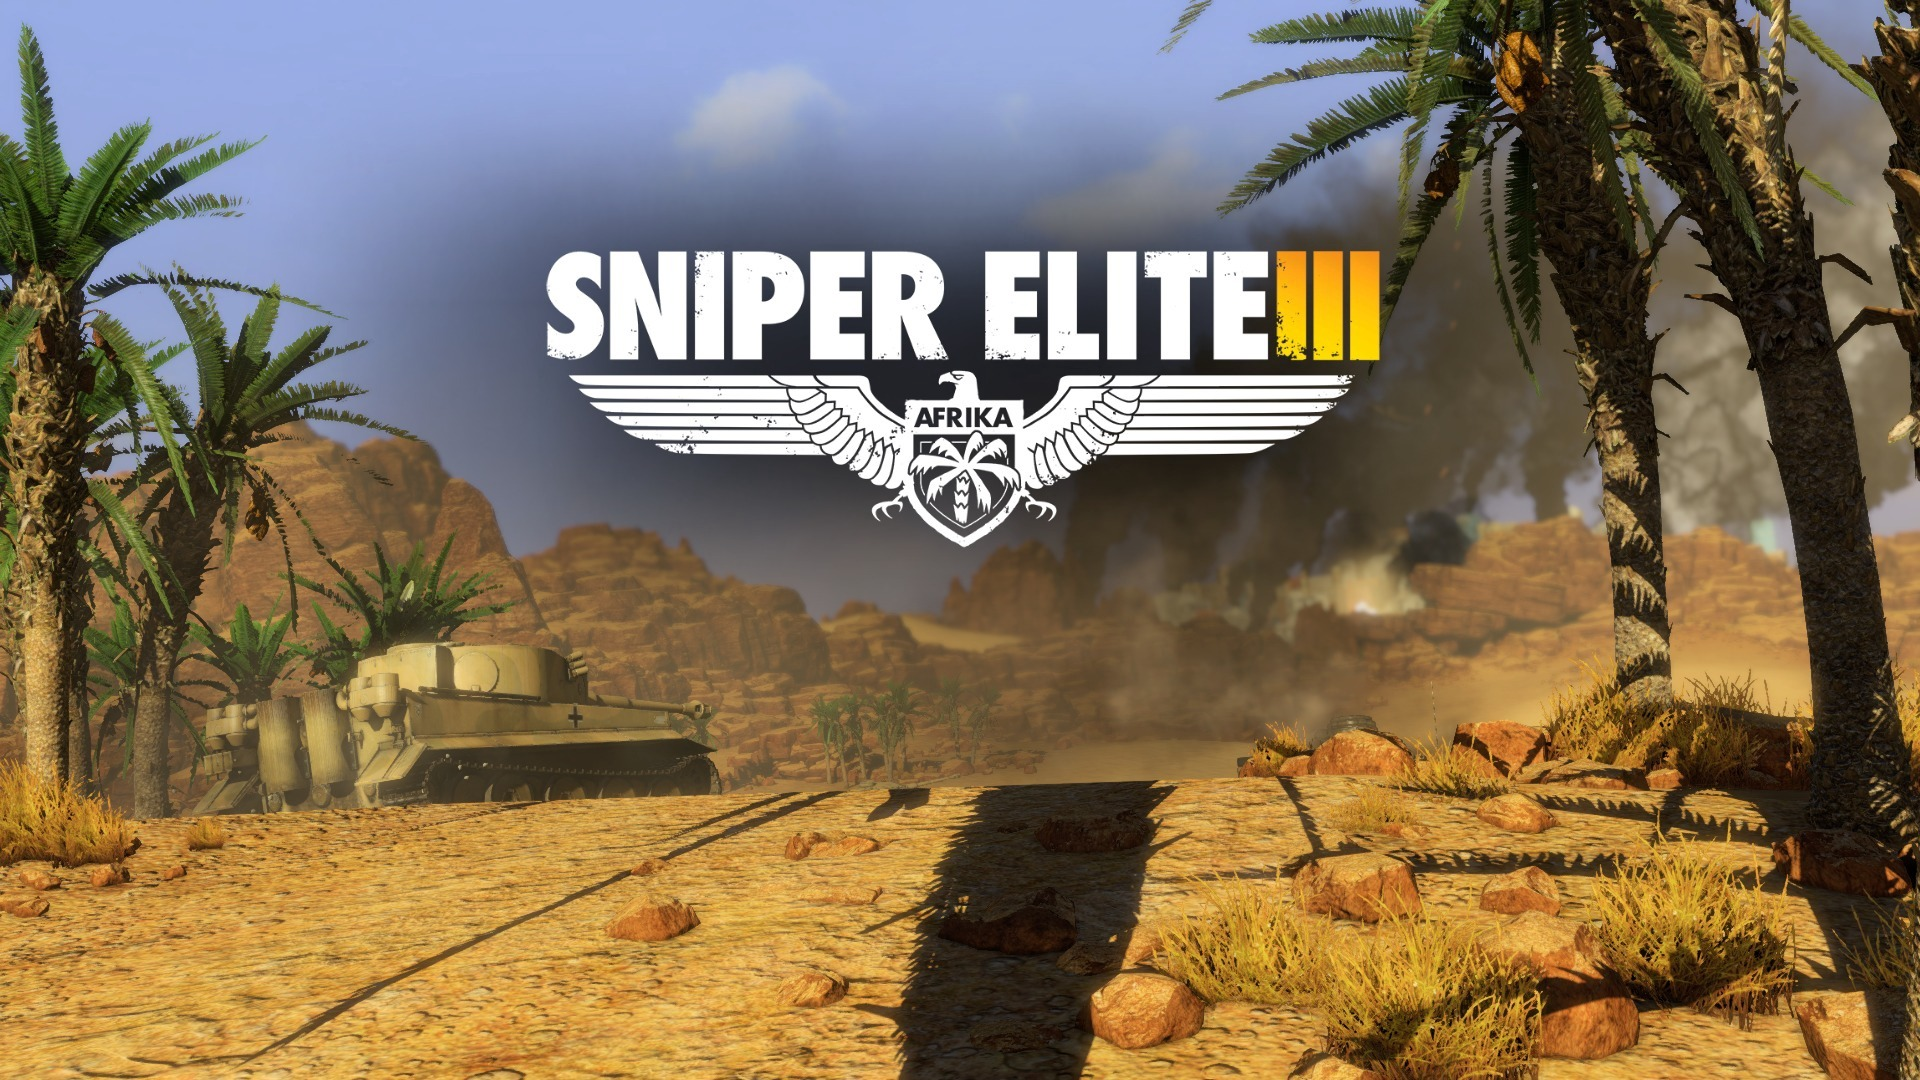 Download wallpaper 1920x1080 sniper elite iii sniper elite 3 1920x1080